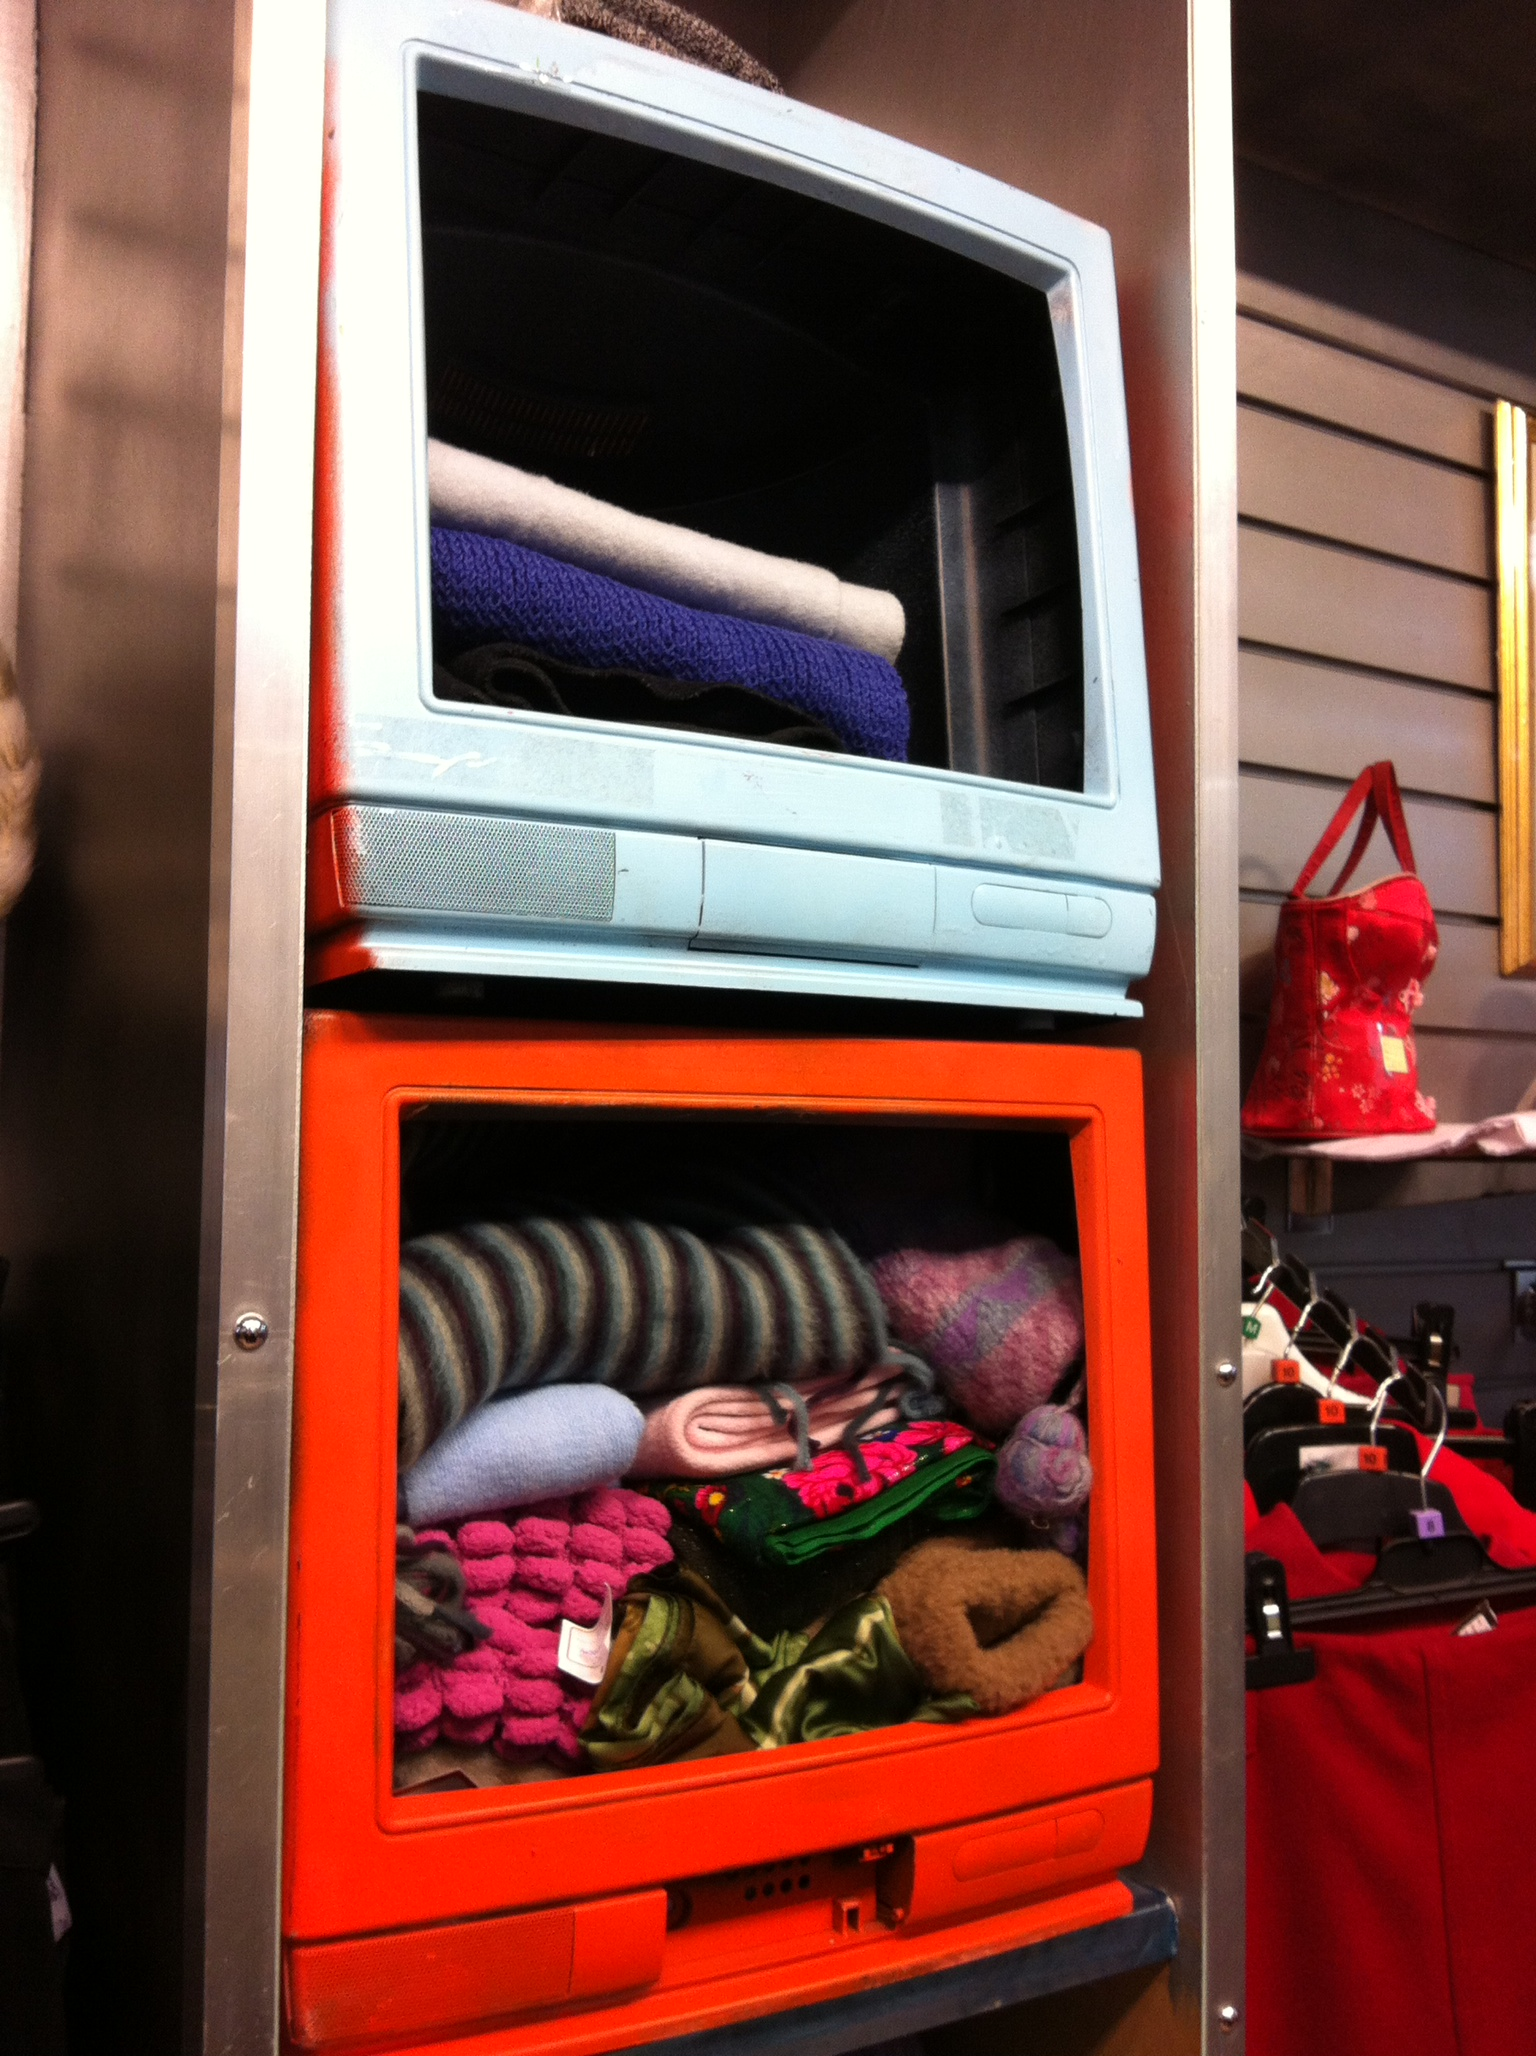 Tv Shop Perth Inventive Upcycling At Push Charity Shop In Perth Caron Ironside